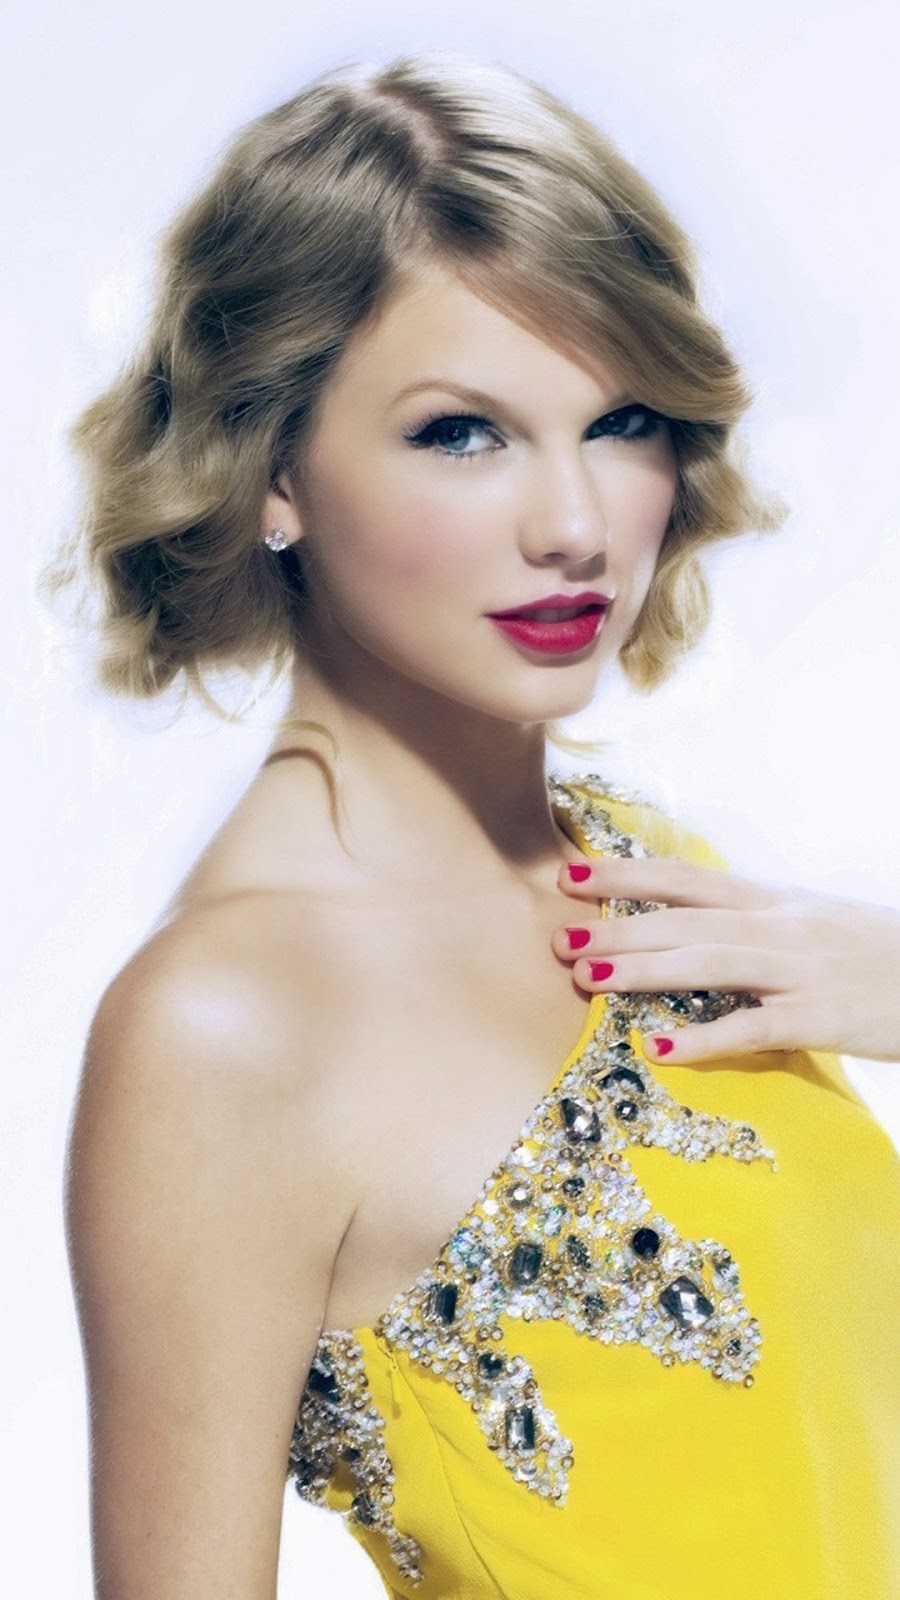 Taylor swift date of birth in Melbourne